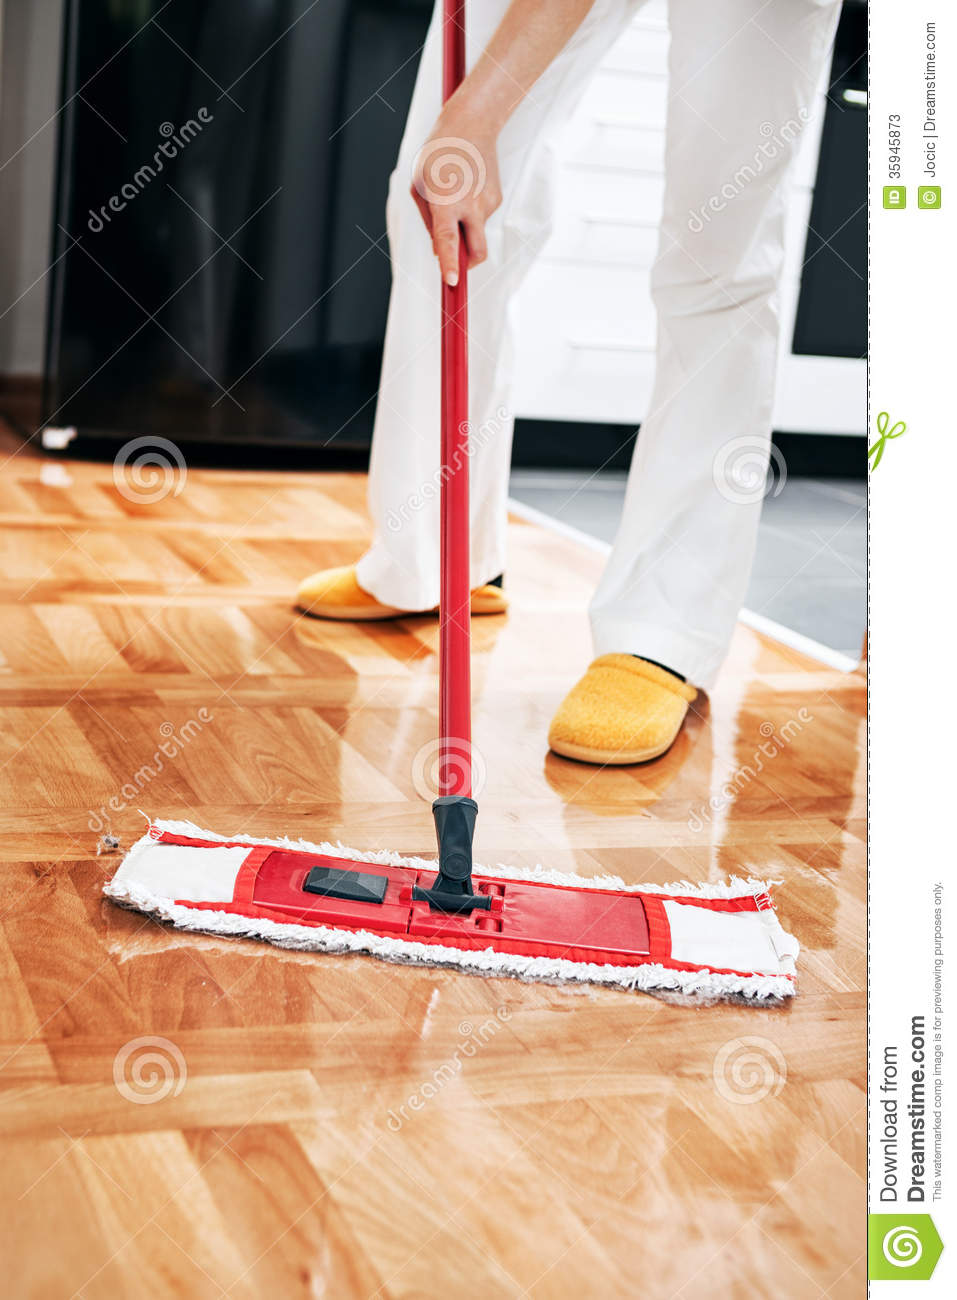 House cleaning stock photos image 35945873 for House cleaning stock photos